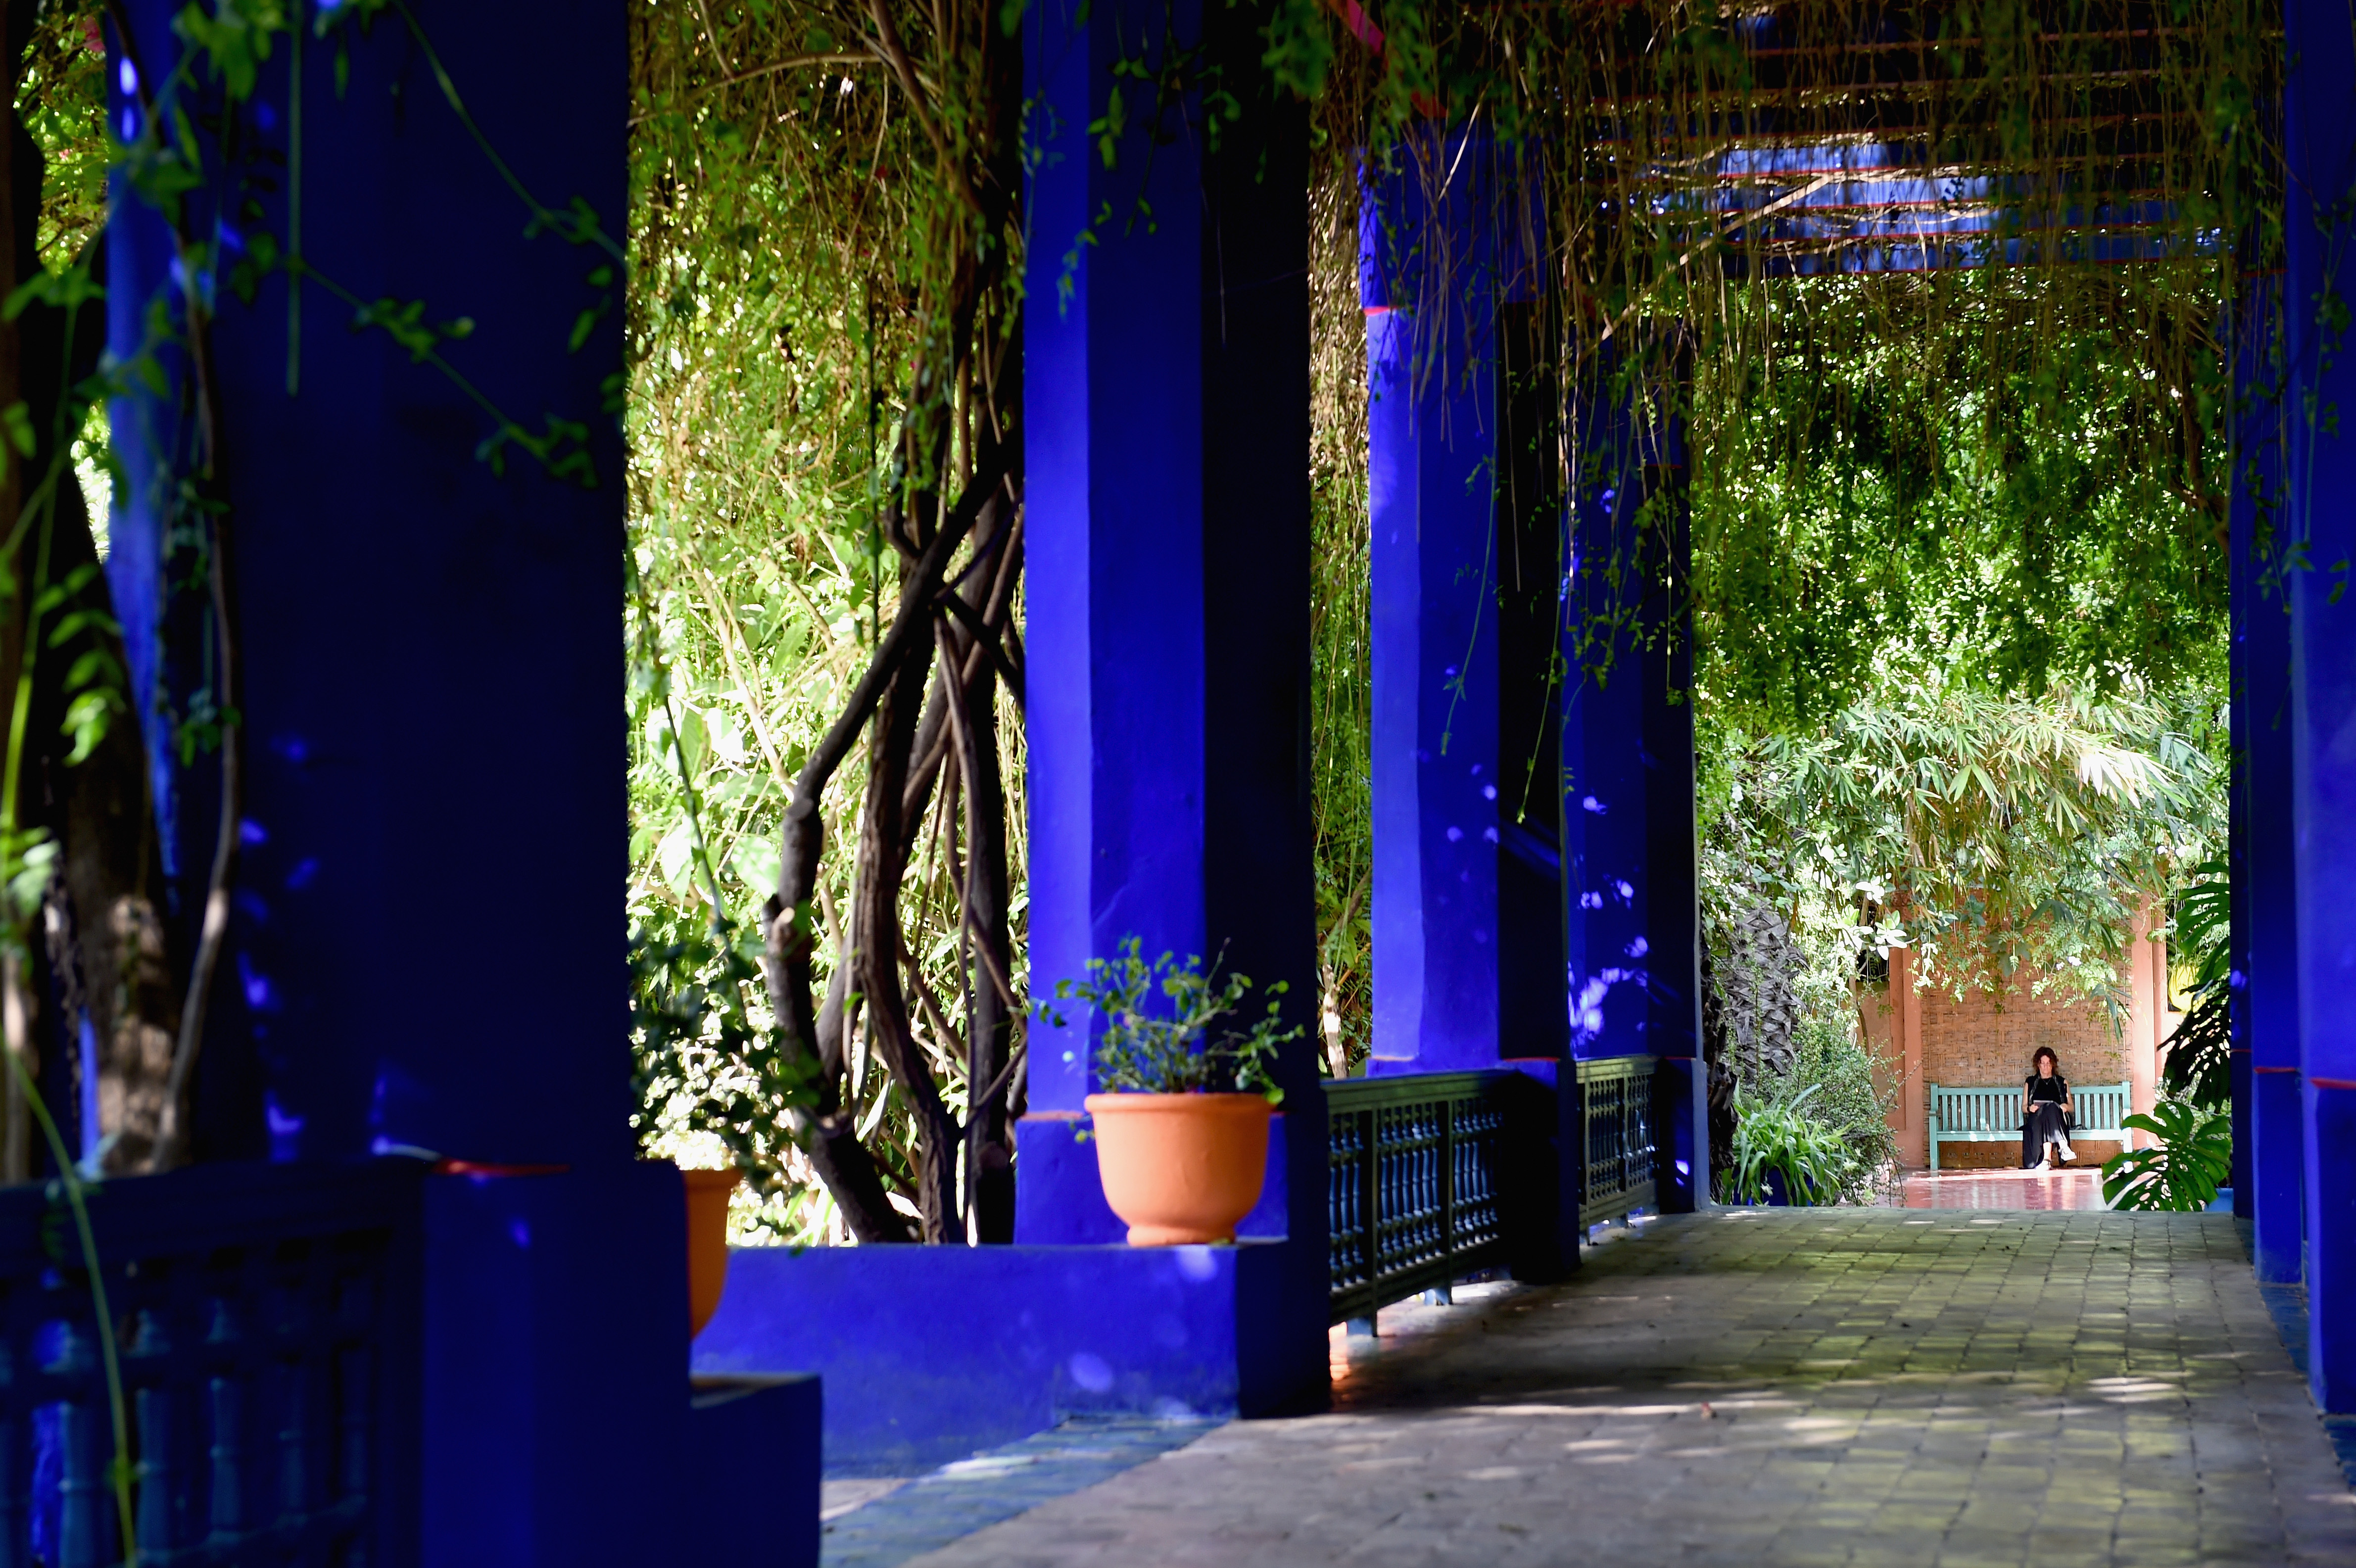 d9b77ccd5ef Yves saint laurent legacy in bloom with new museum at jardin majorelle  style jpg 4761x3169 Ysl